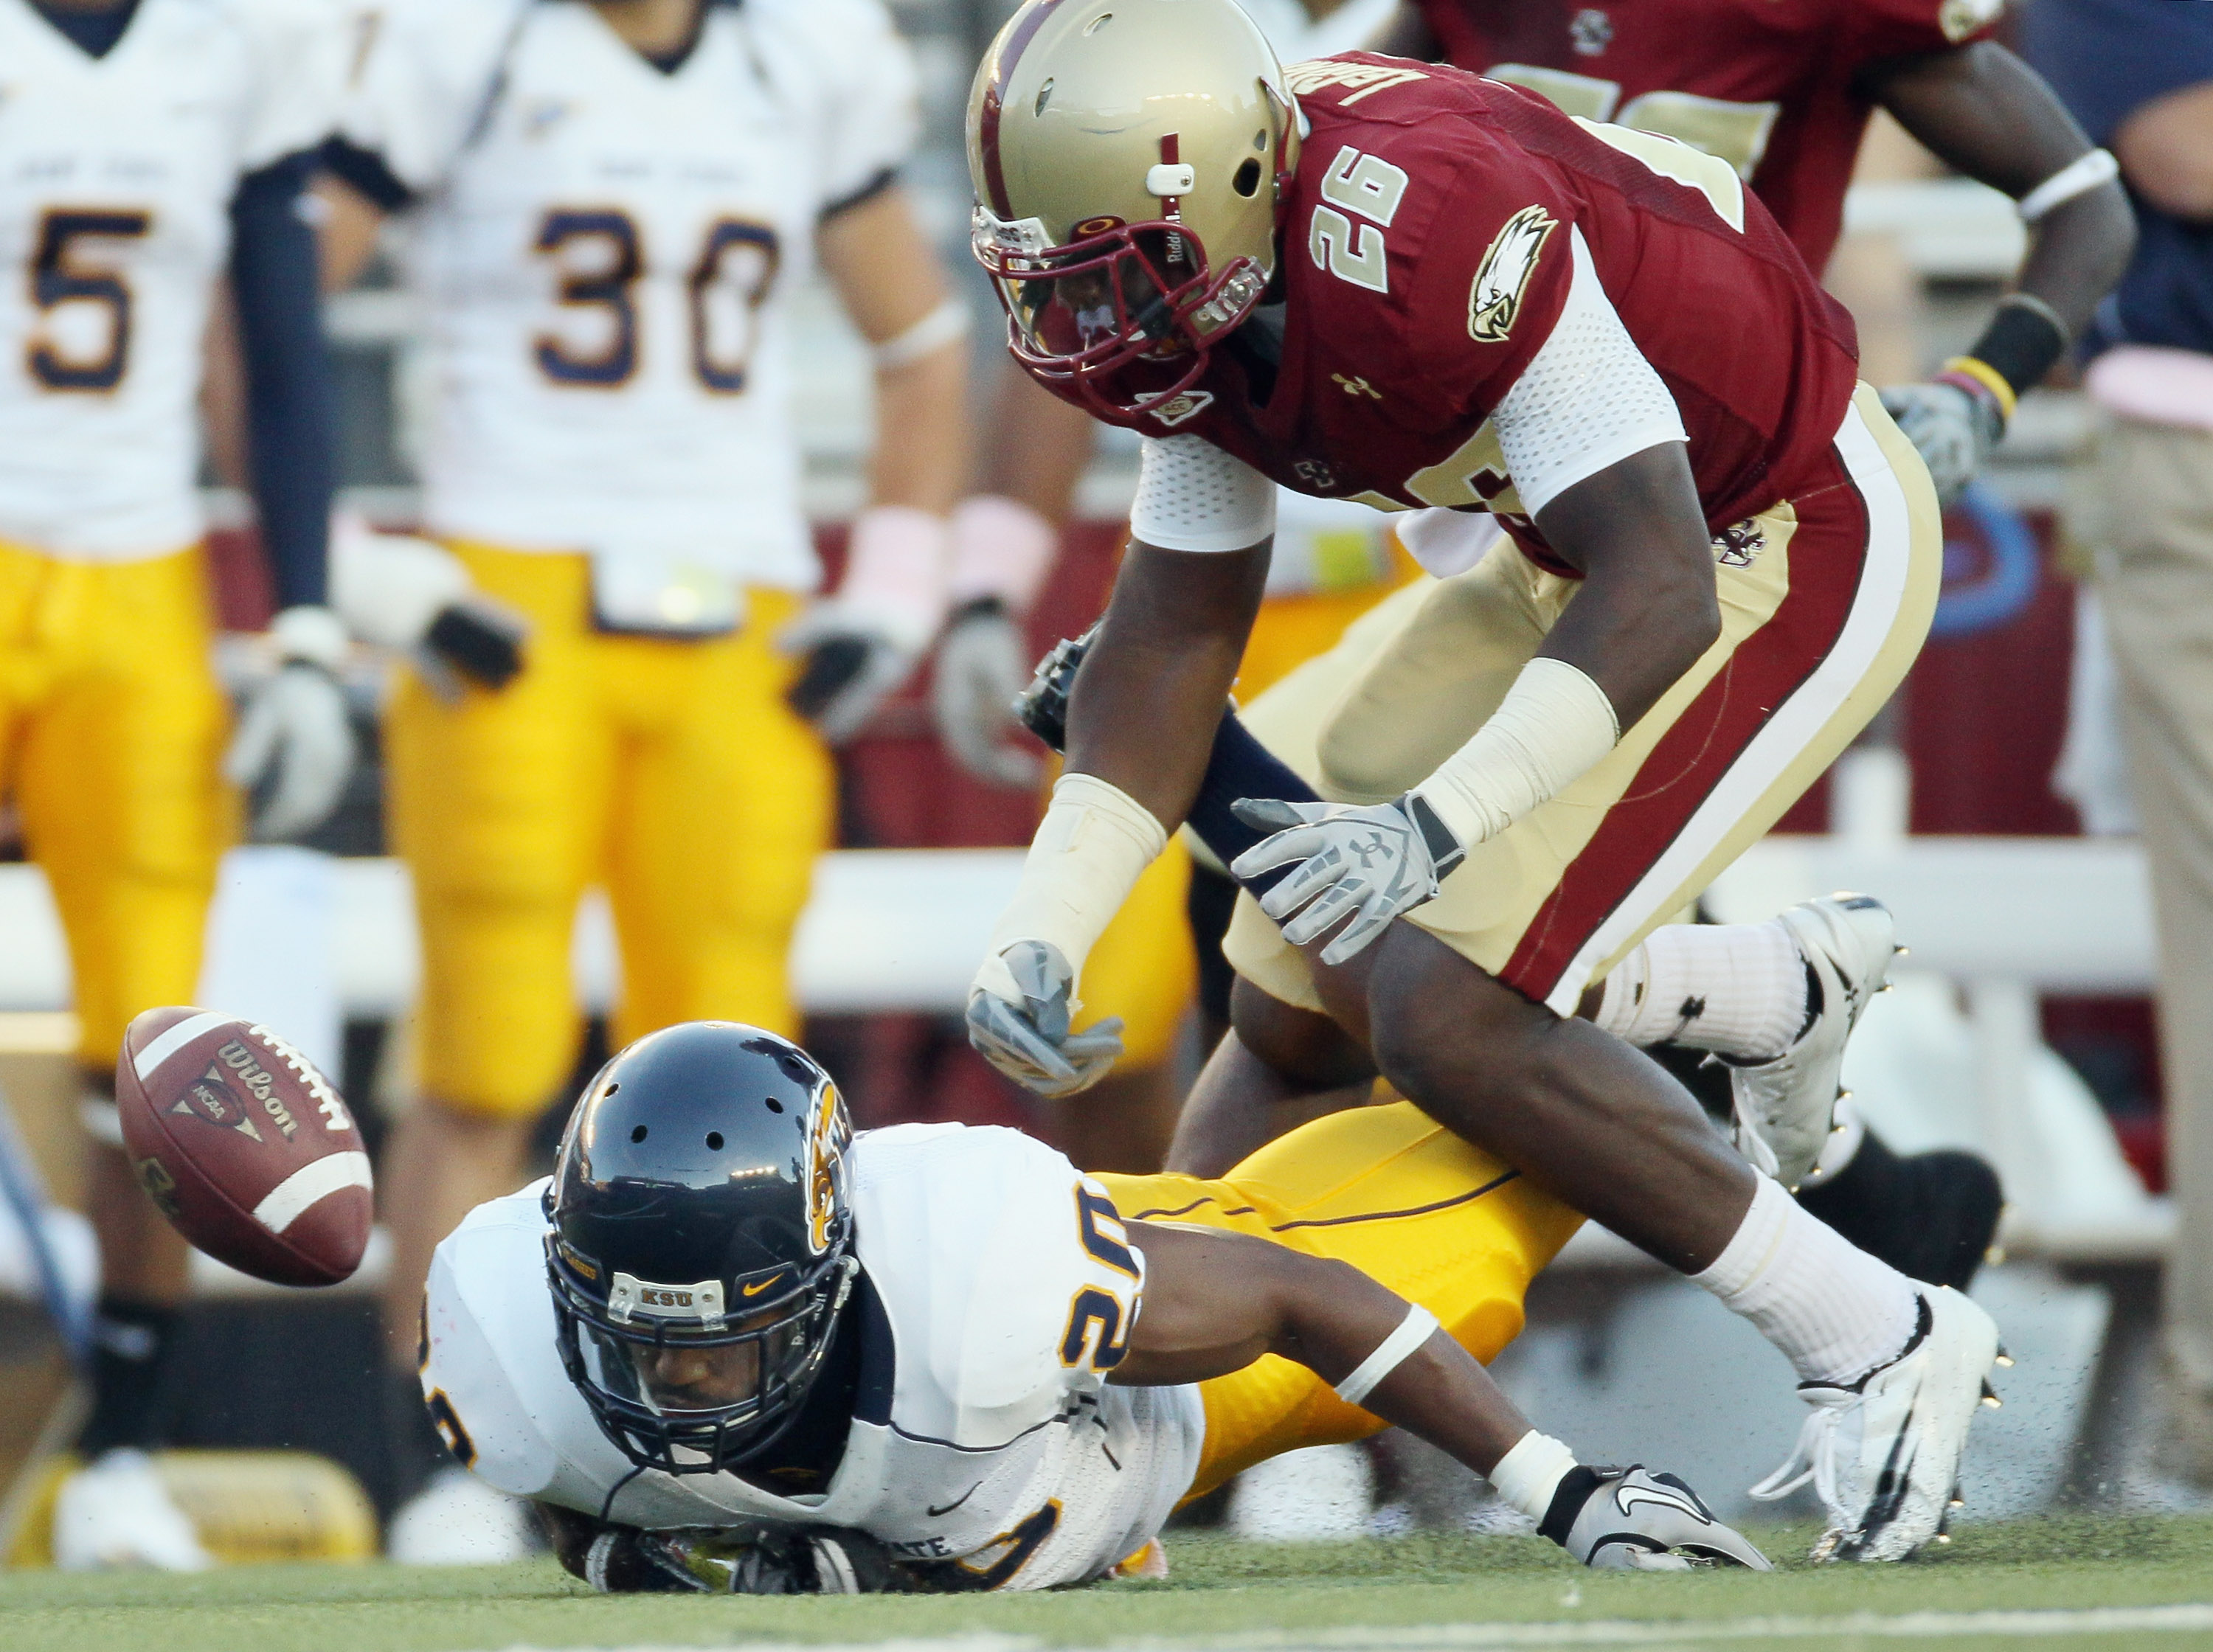 CHESTNUT HILL, MA - SEPTEMBER 11: Dominick LeGrande #26 of the Boston College Eagles and Will Johnson #20 of the Kent State Golden Flashes chase after the fumble on September 11, 2010 at Alumni Stadium in Chestnut Hill, Massachusetts. Boston College defea